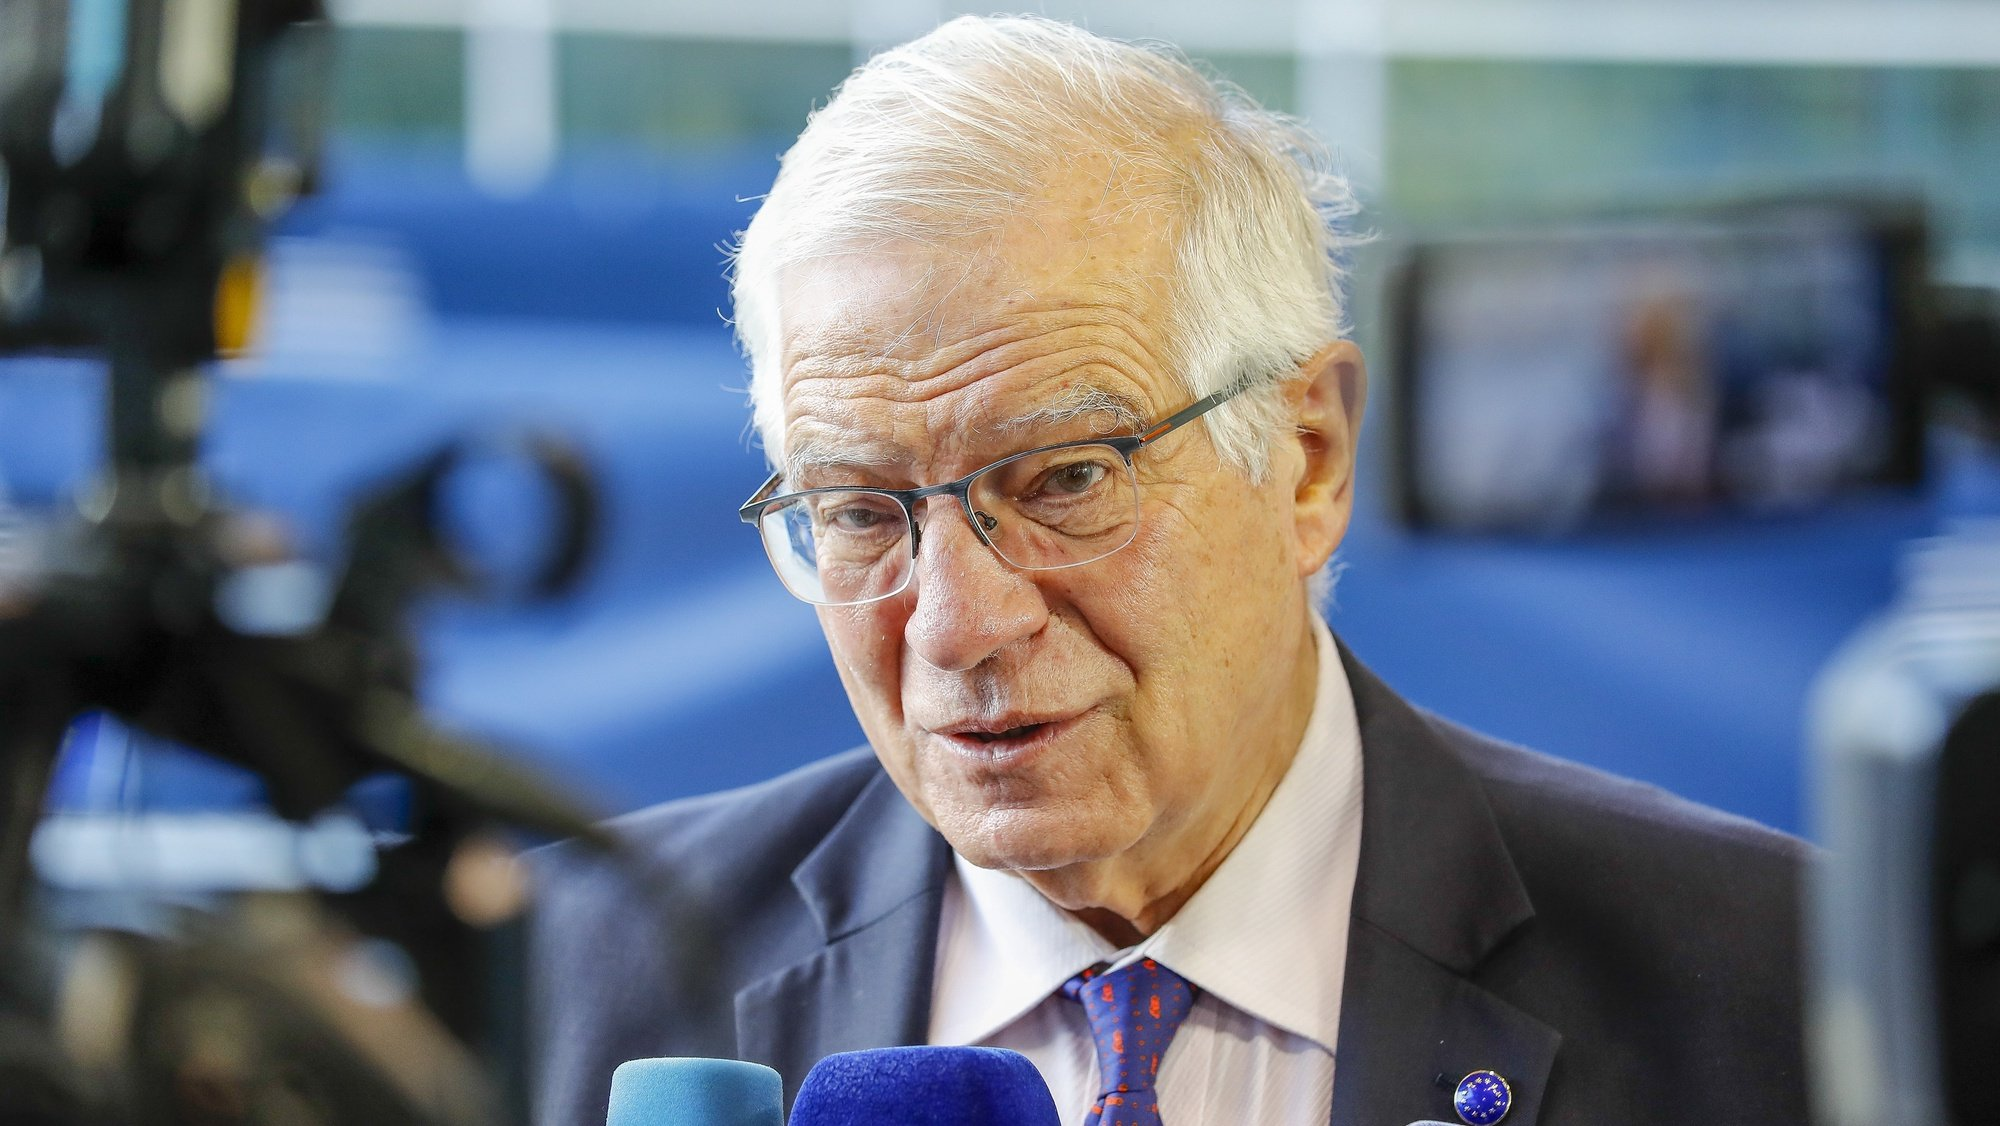 epa09529674 High Representative of the Union for Foreign Affairs and Security Policy, Vice President of the European Commission Josep Borrell speaks to the media prior to a EU Foreign Affairs Council meeting in Luxembourg, 18 October 2021. The Council will discuss the EU's approach to the Gulf region, EU relations with the Eastern Partnership (EaP), as well as on Ethiopia, focusing on humanitarian aspects in light of the latest developments in the country, and on the upcoming general elections in Nicaragua,  EPA/JULIEN WARNAND